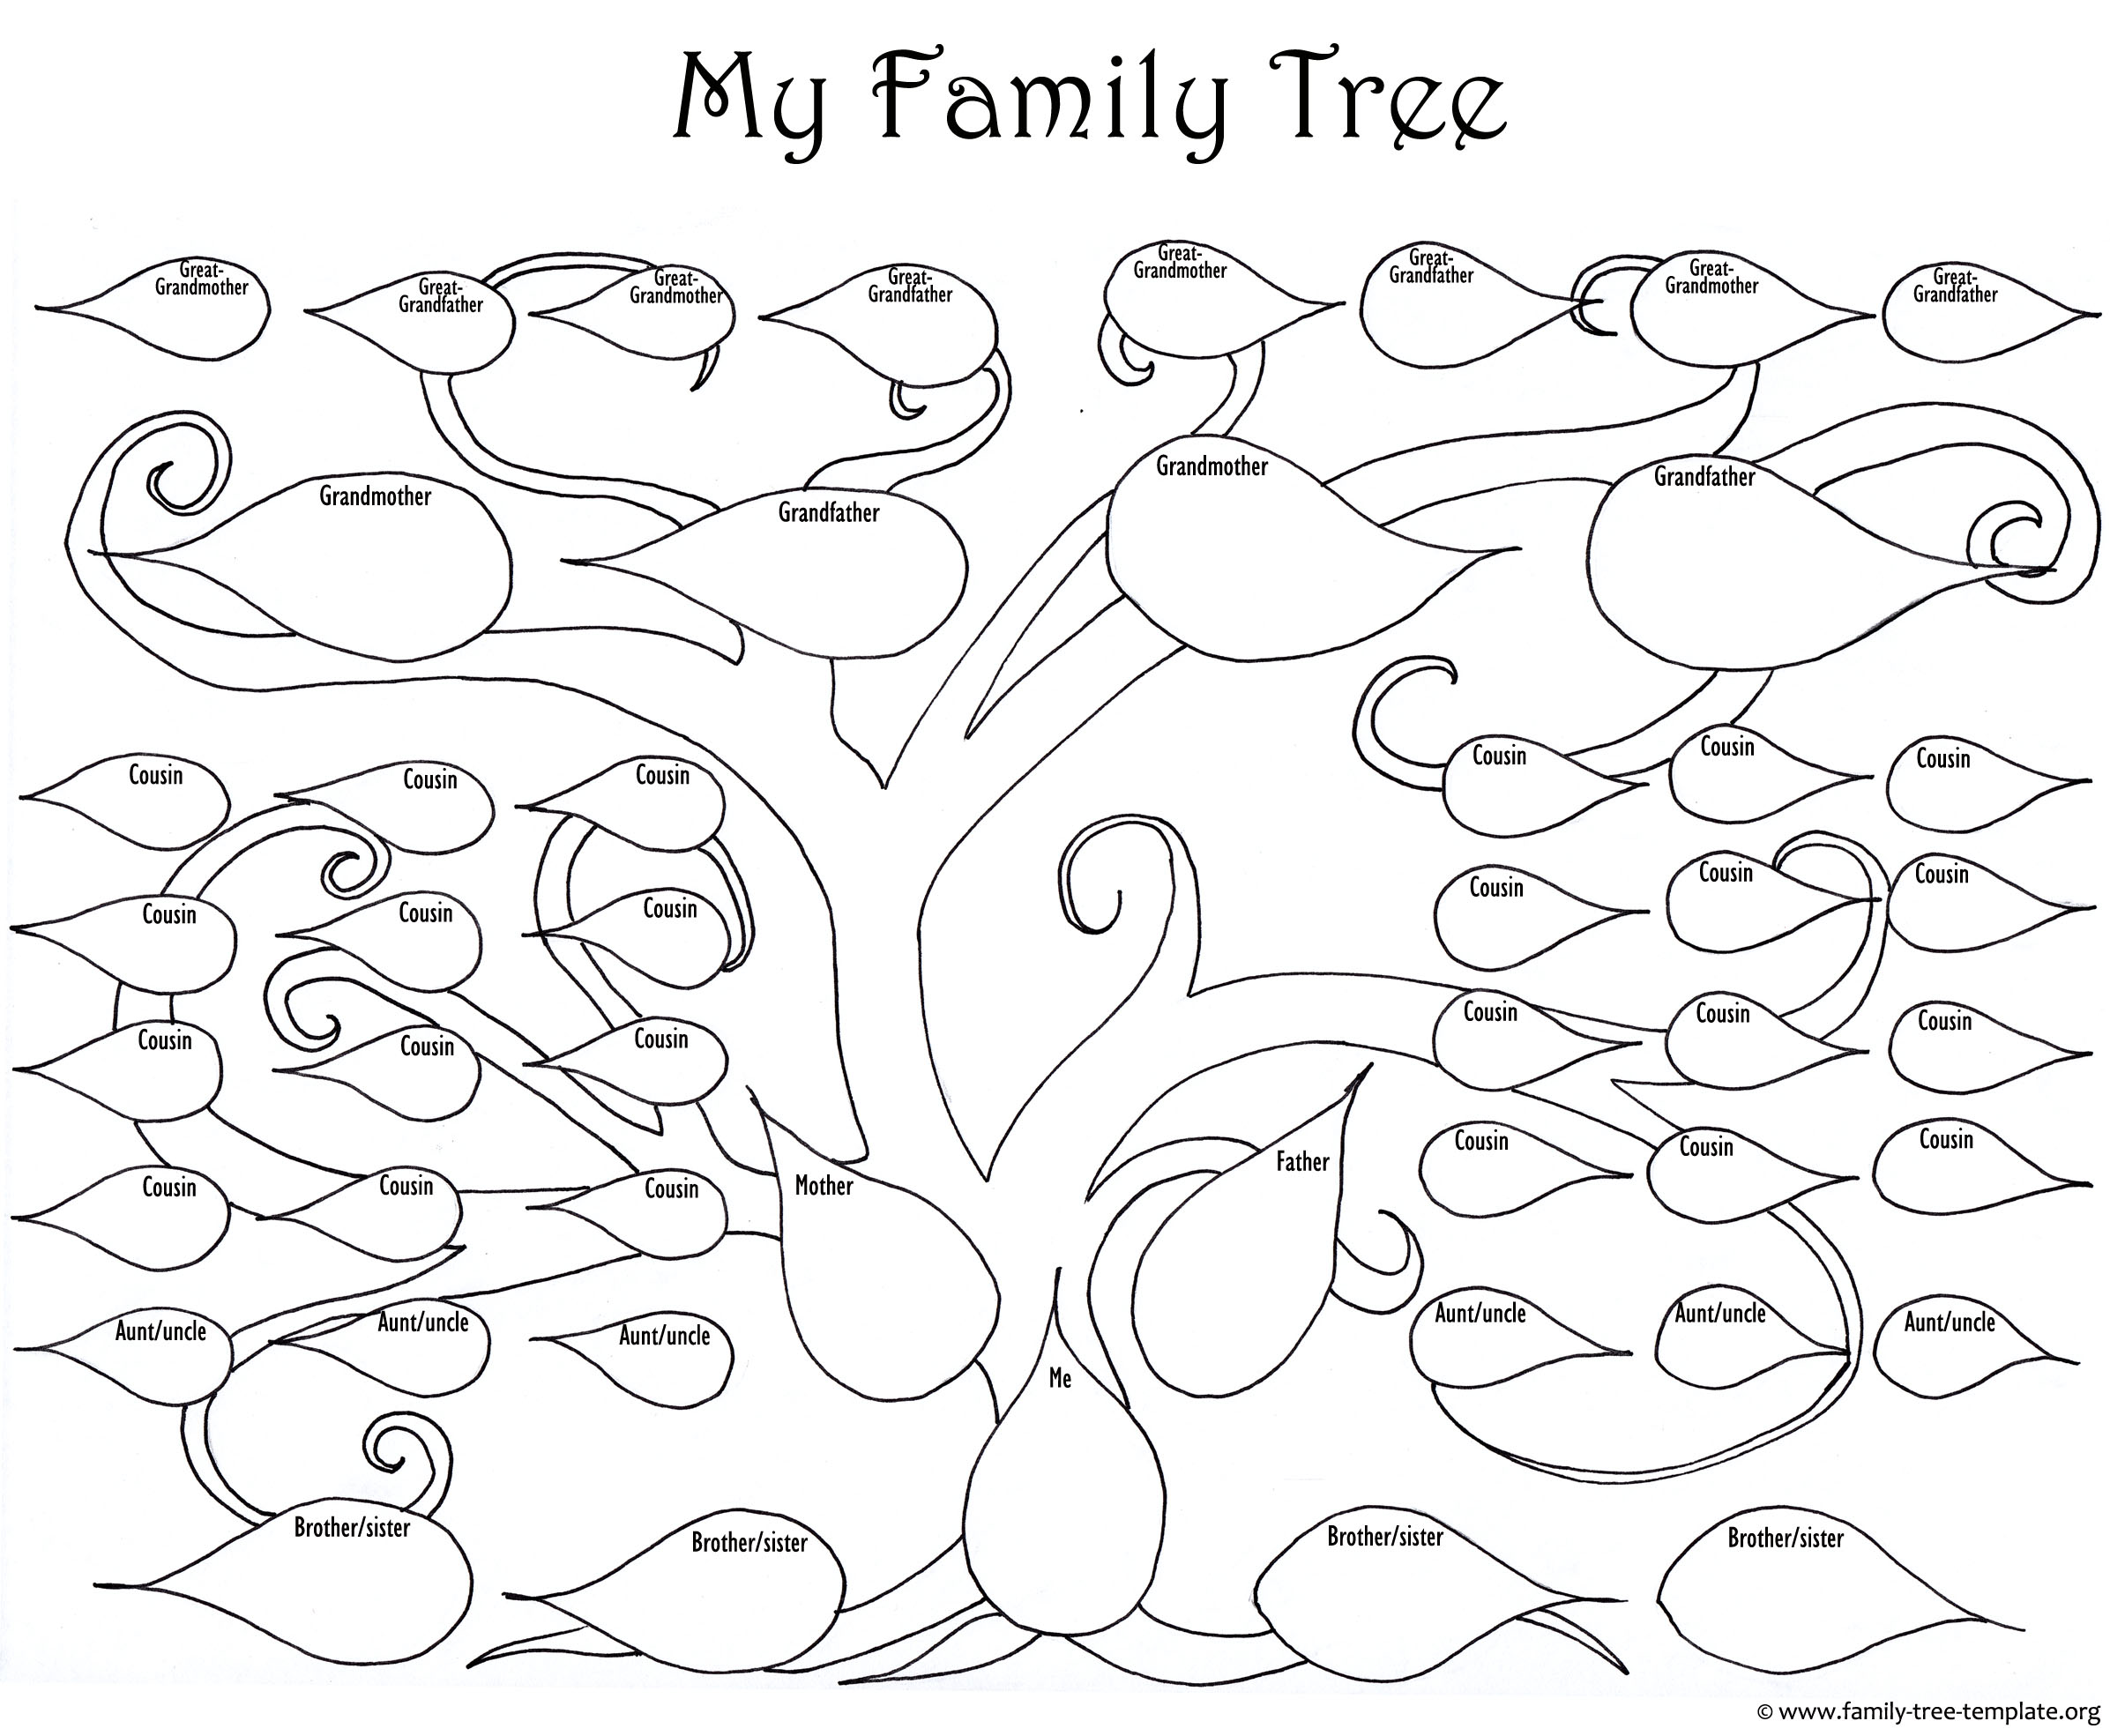 Family Tree Drawing Easy At Getdrawings